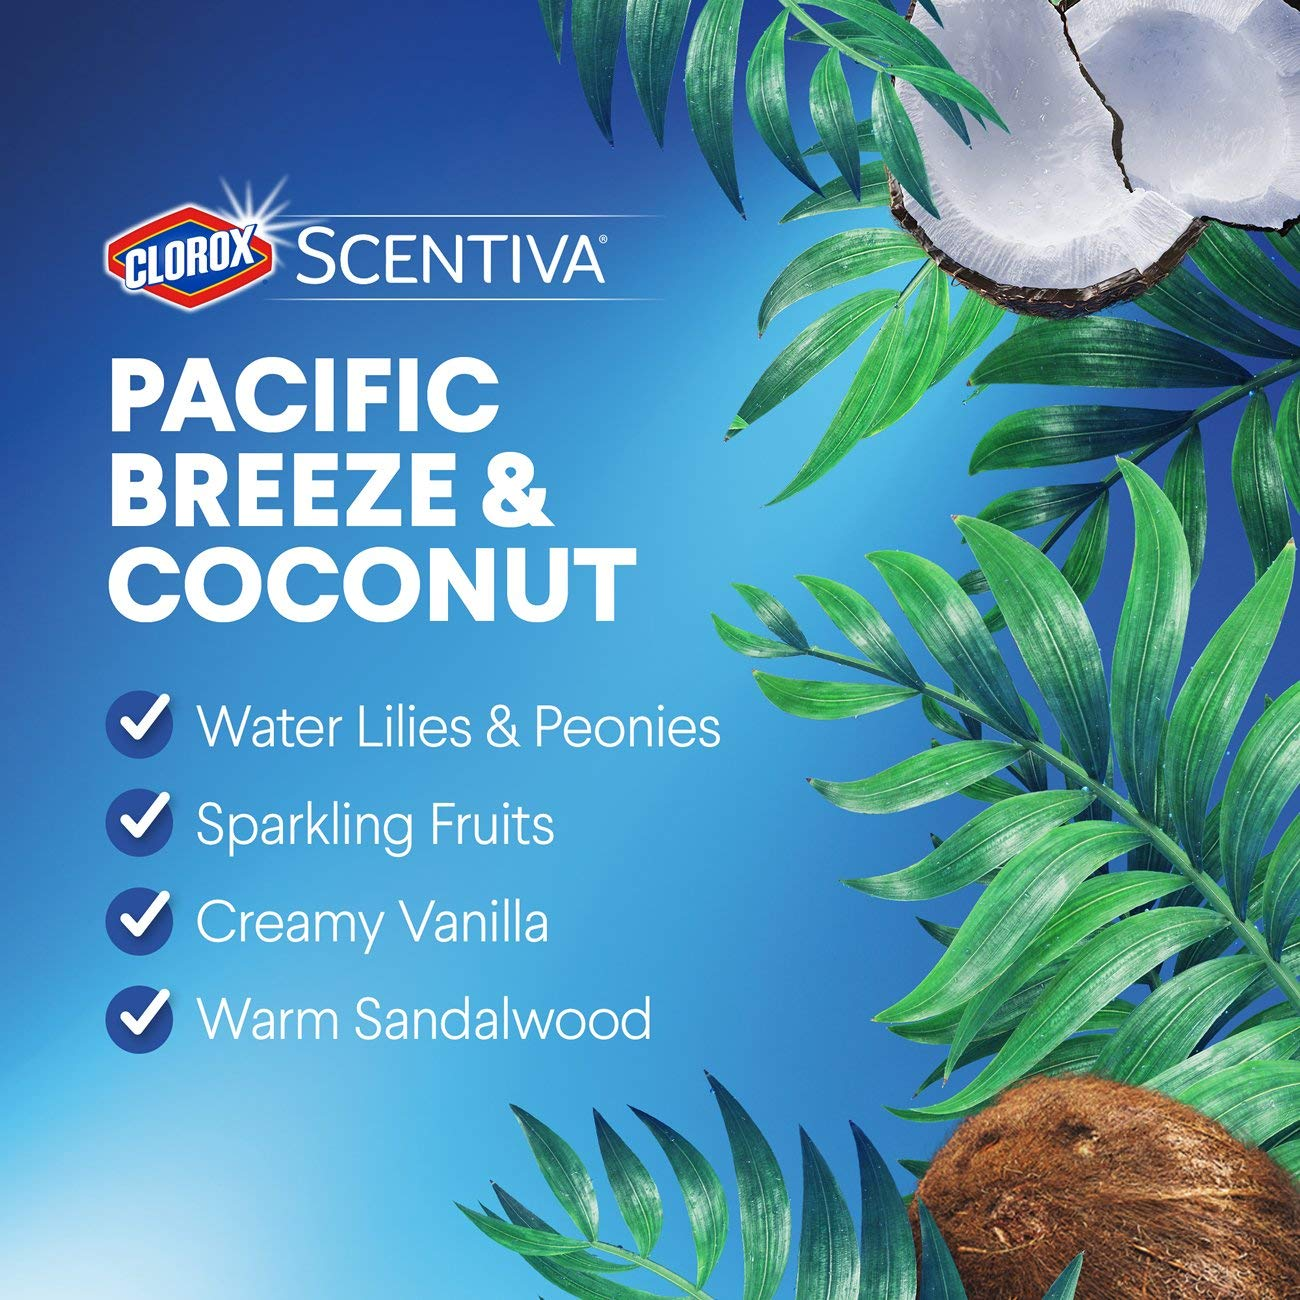 Clorox Scentiva Disinfecting Wet Mopping Pad Refills for Floor Cleaning, Pacific Breeze & Coconut, 48 Count by Clorox (Image #6)